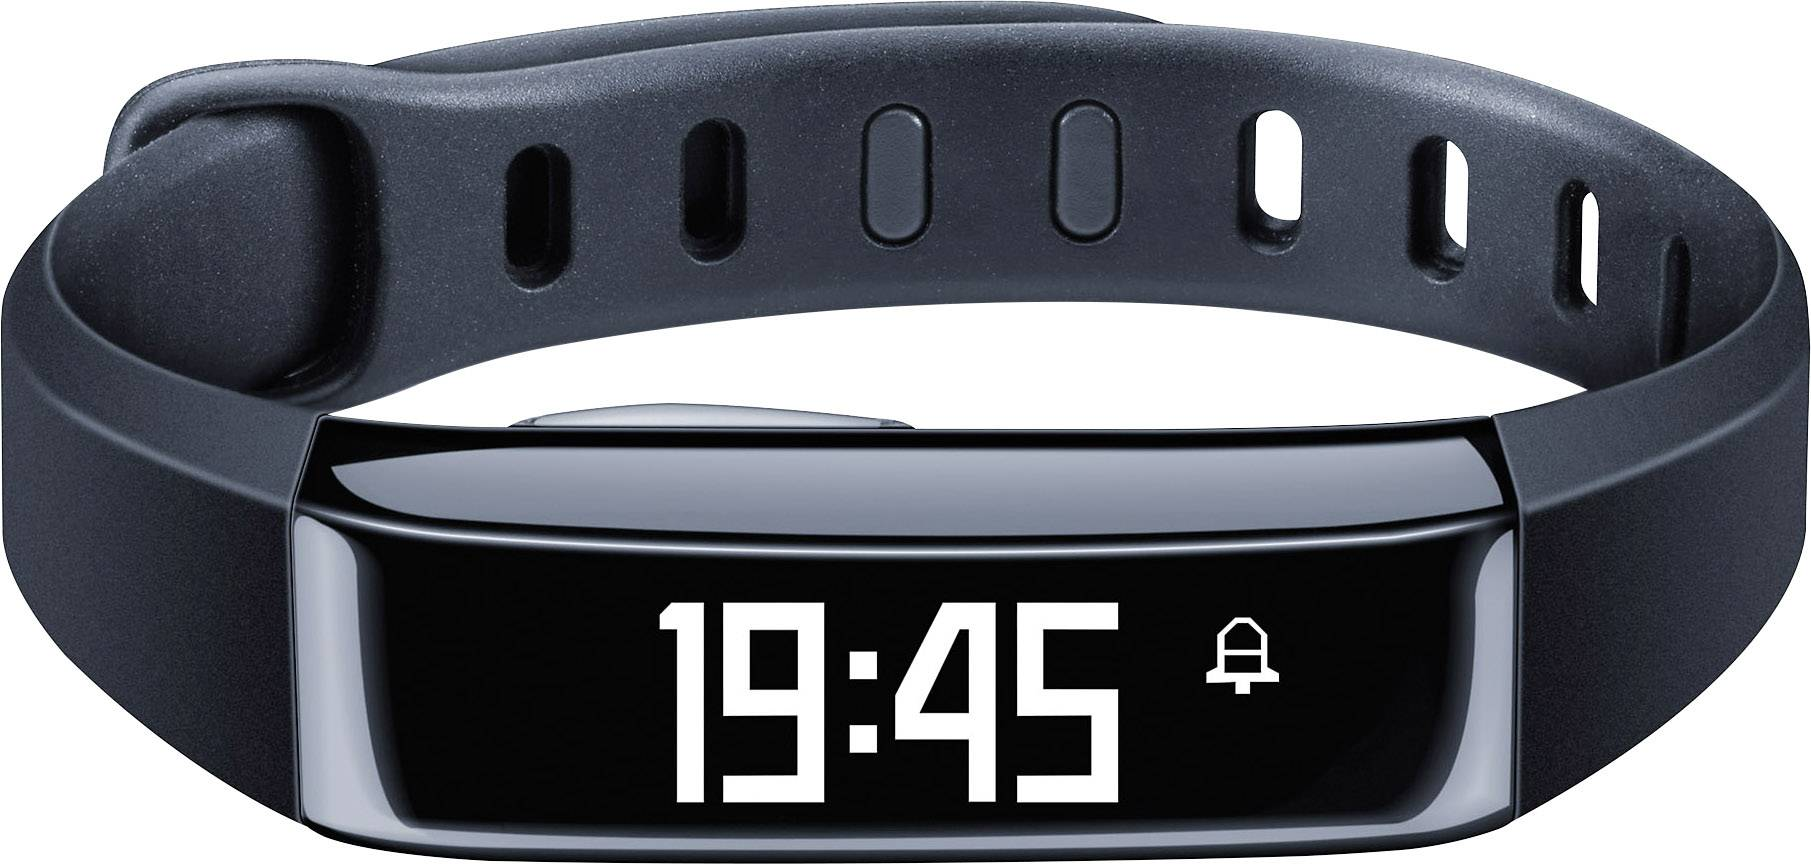 Fitness hodinky s Bluetooth Beurer AS80, velikost: uni